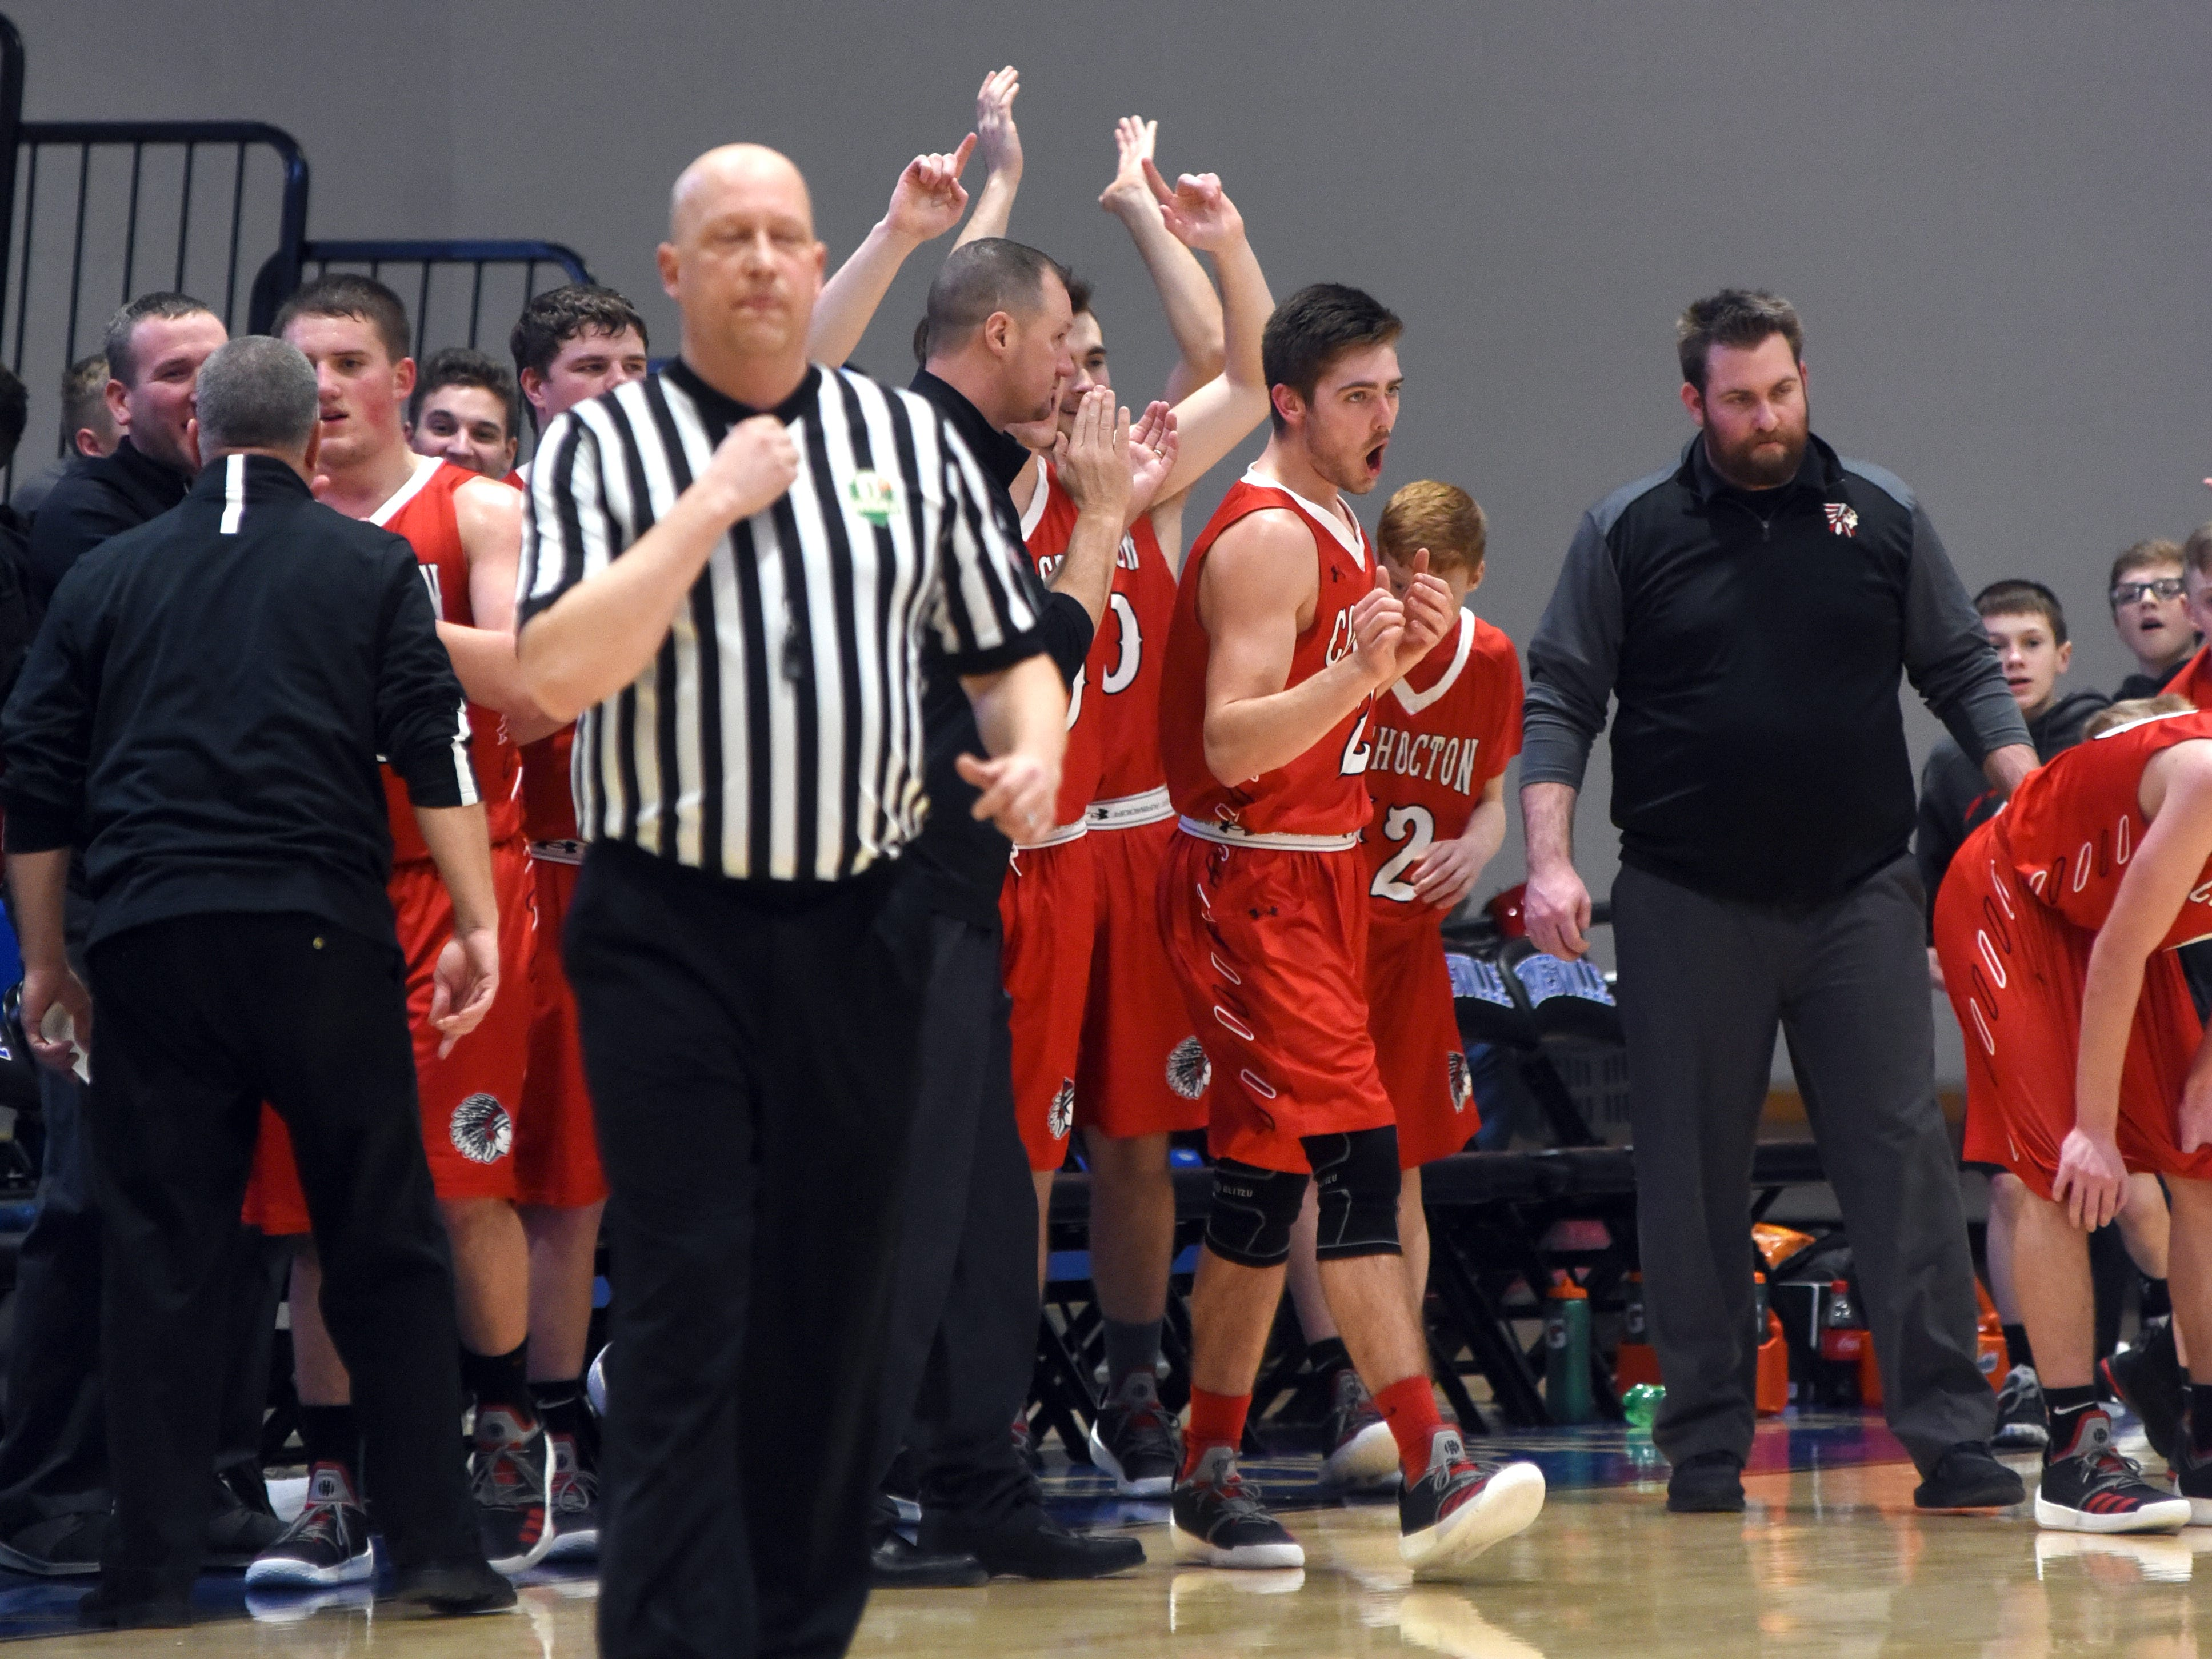 Coshocton's bench cheers following a 38-27 win against Zanesville.